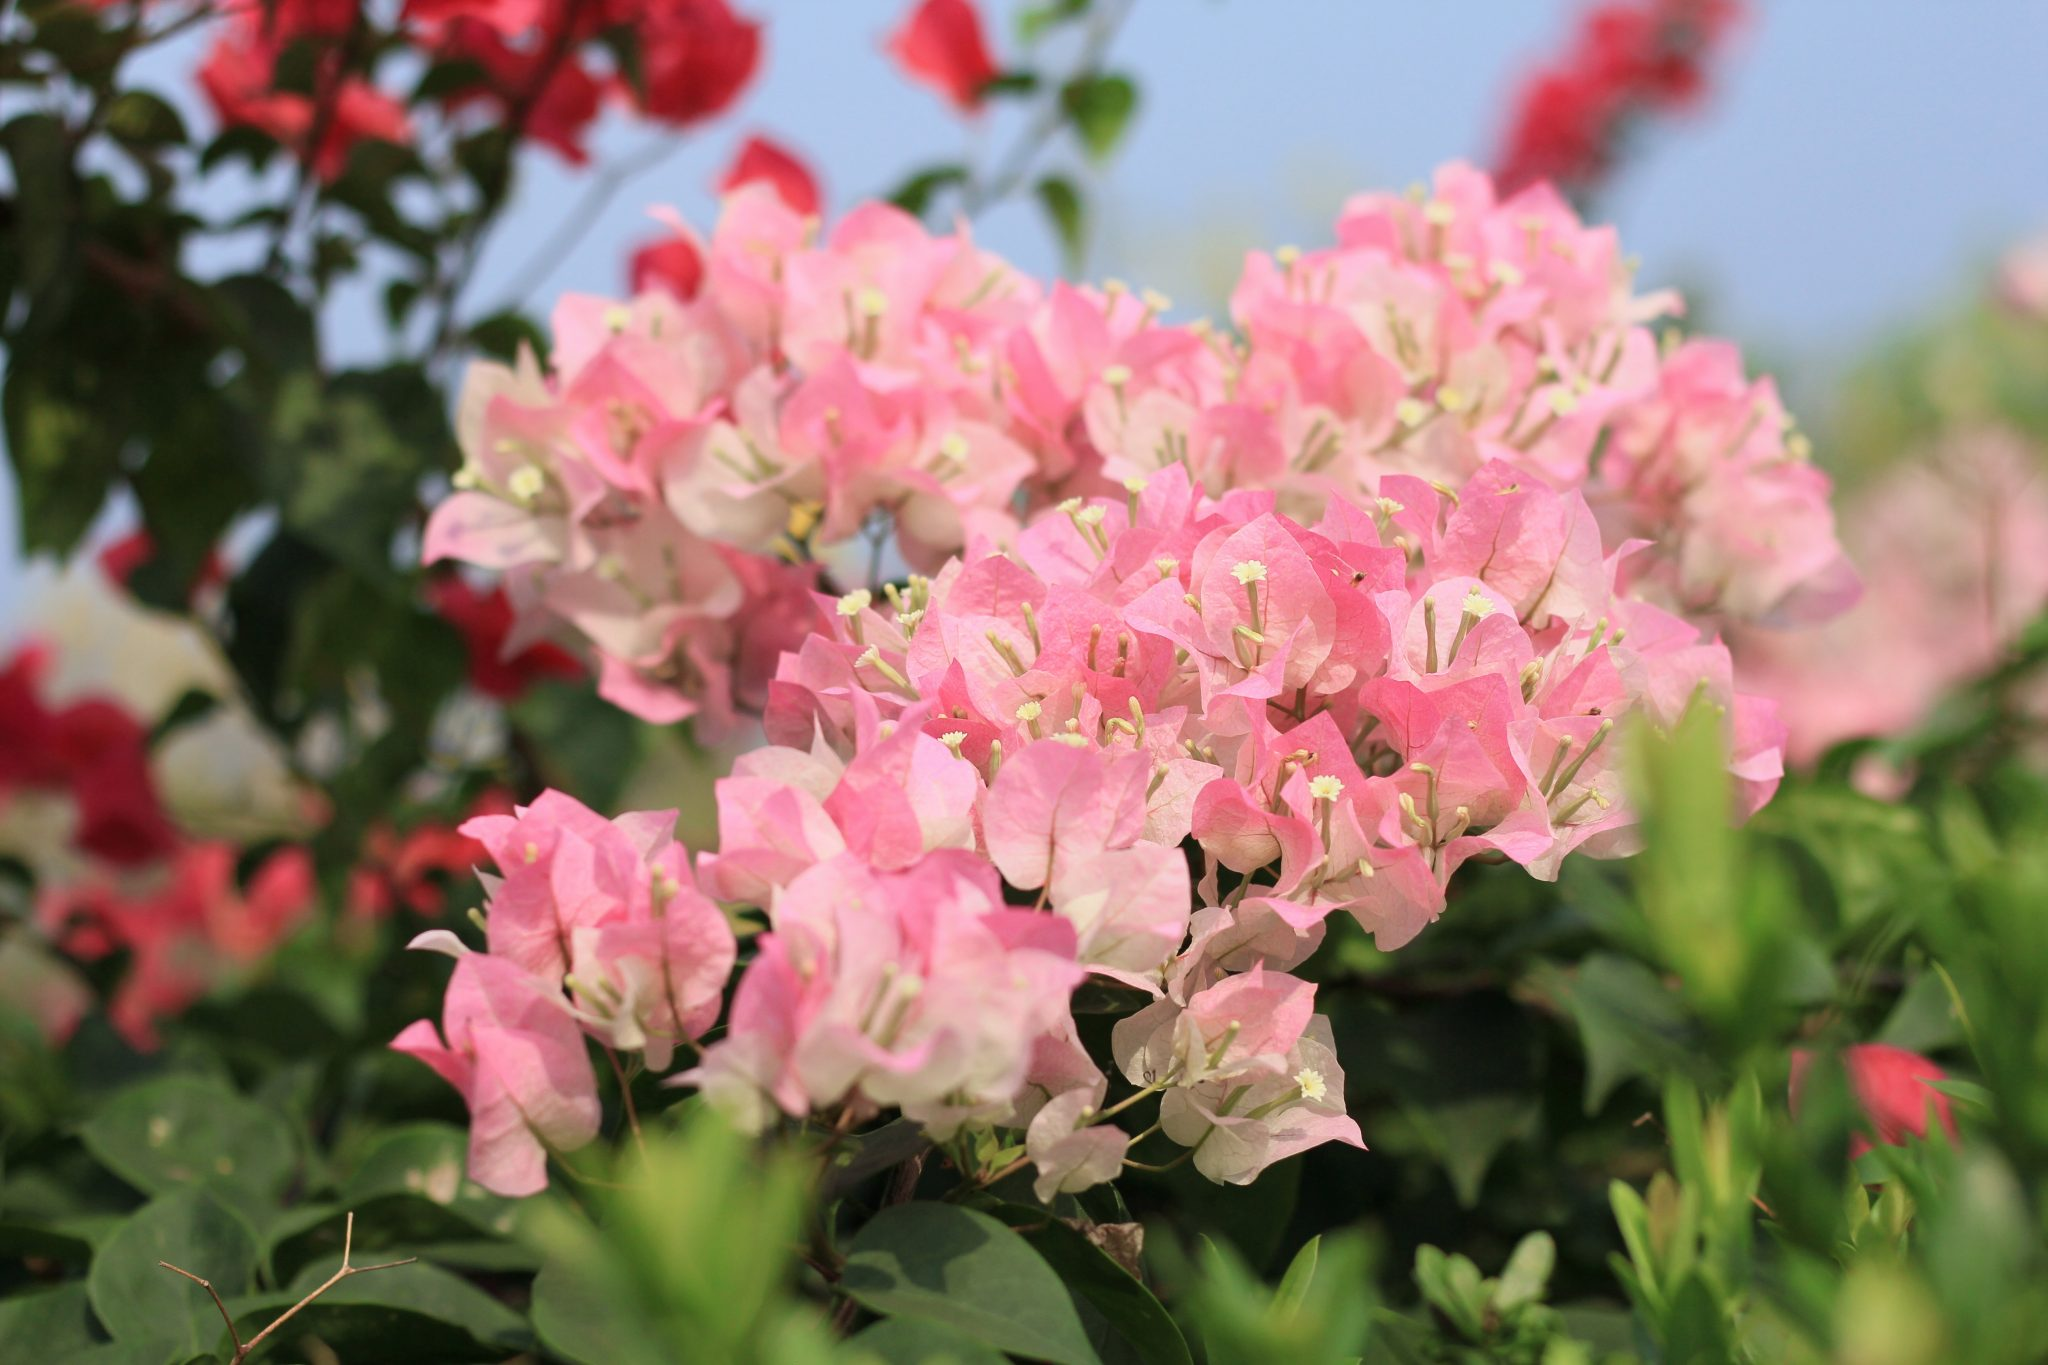 How to Prune A Bougainvillea